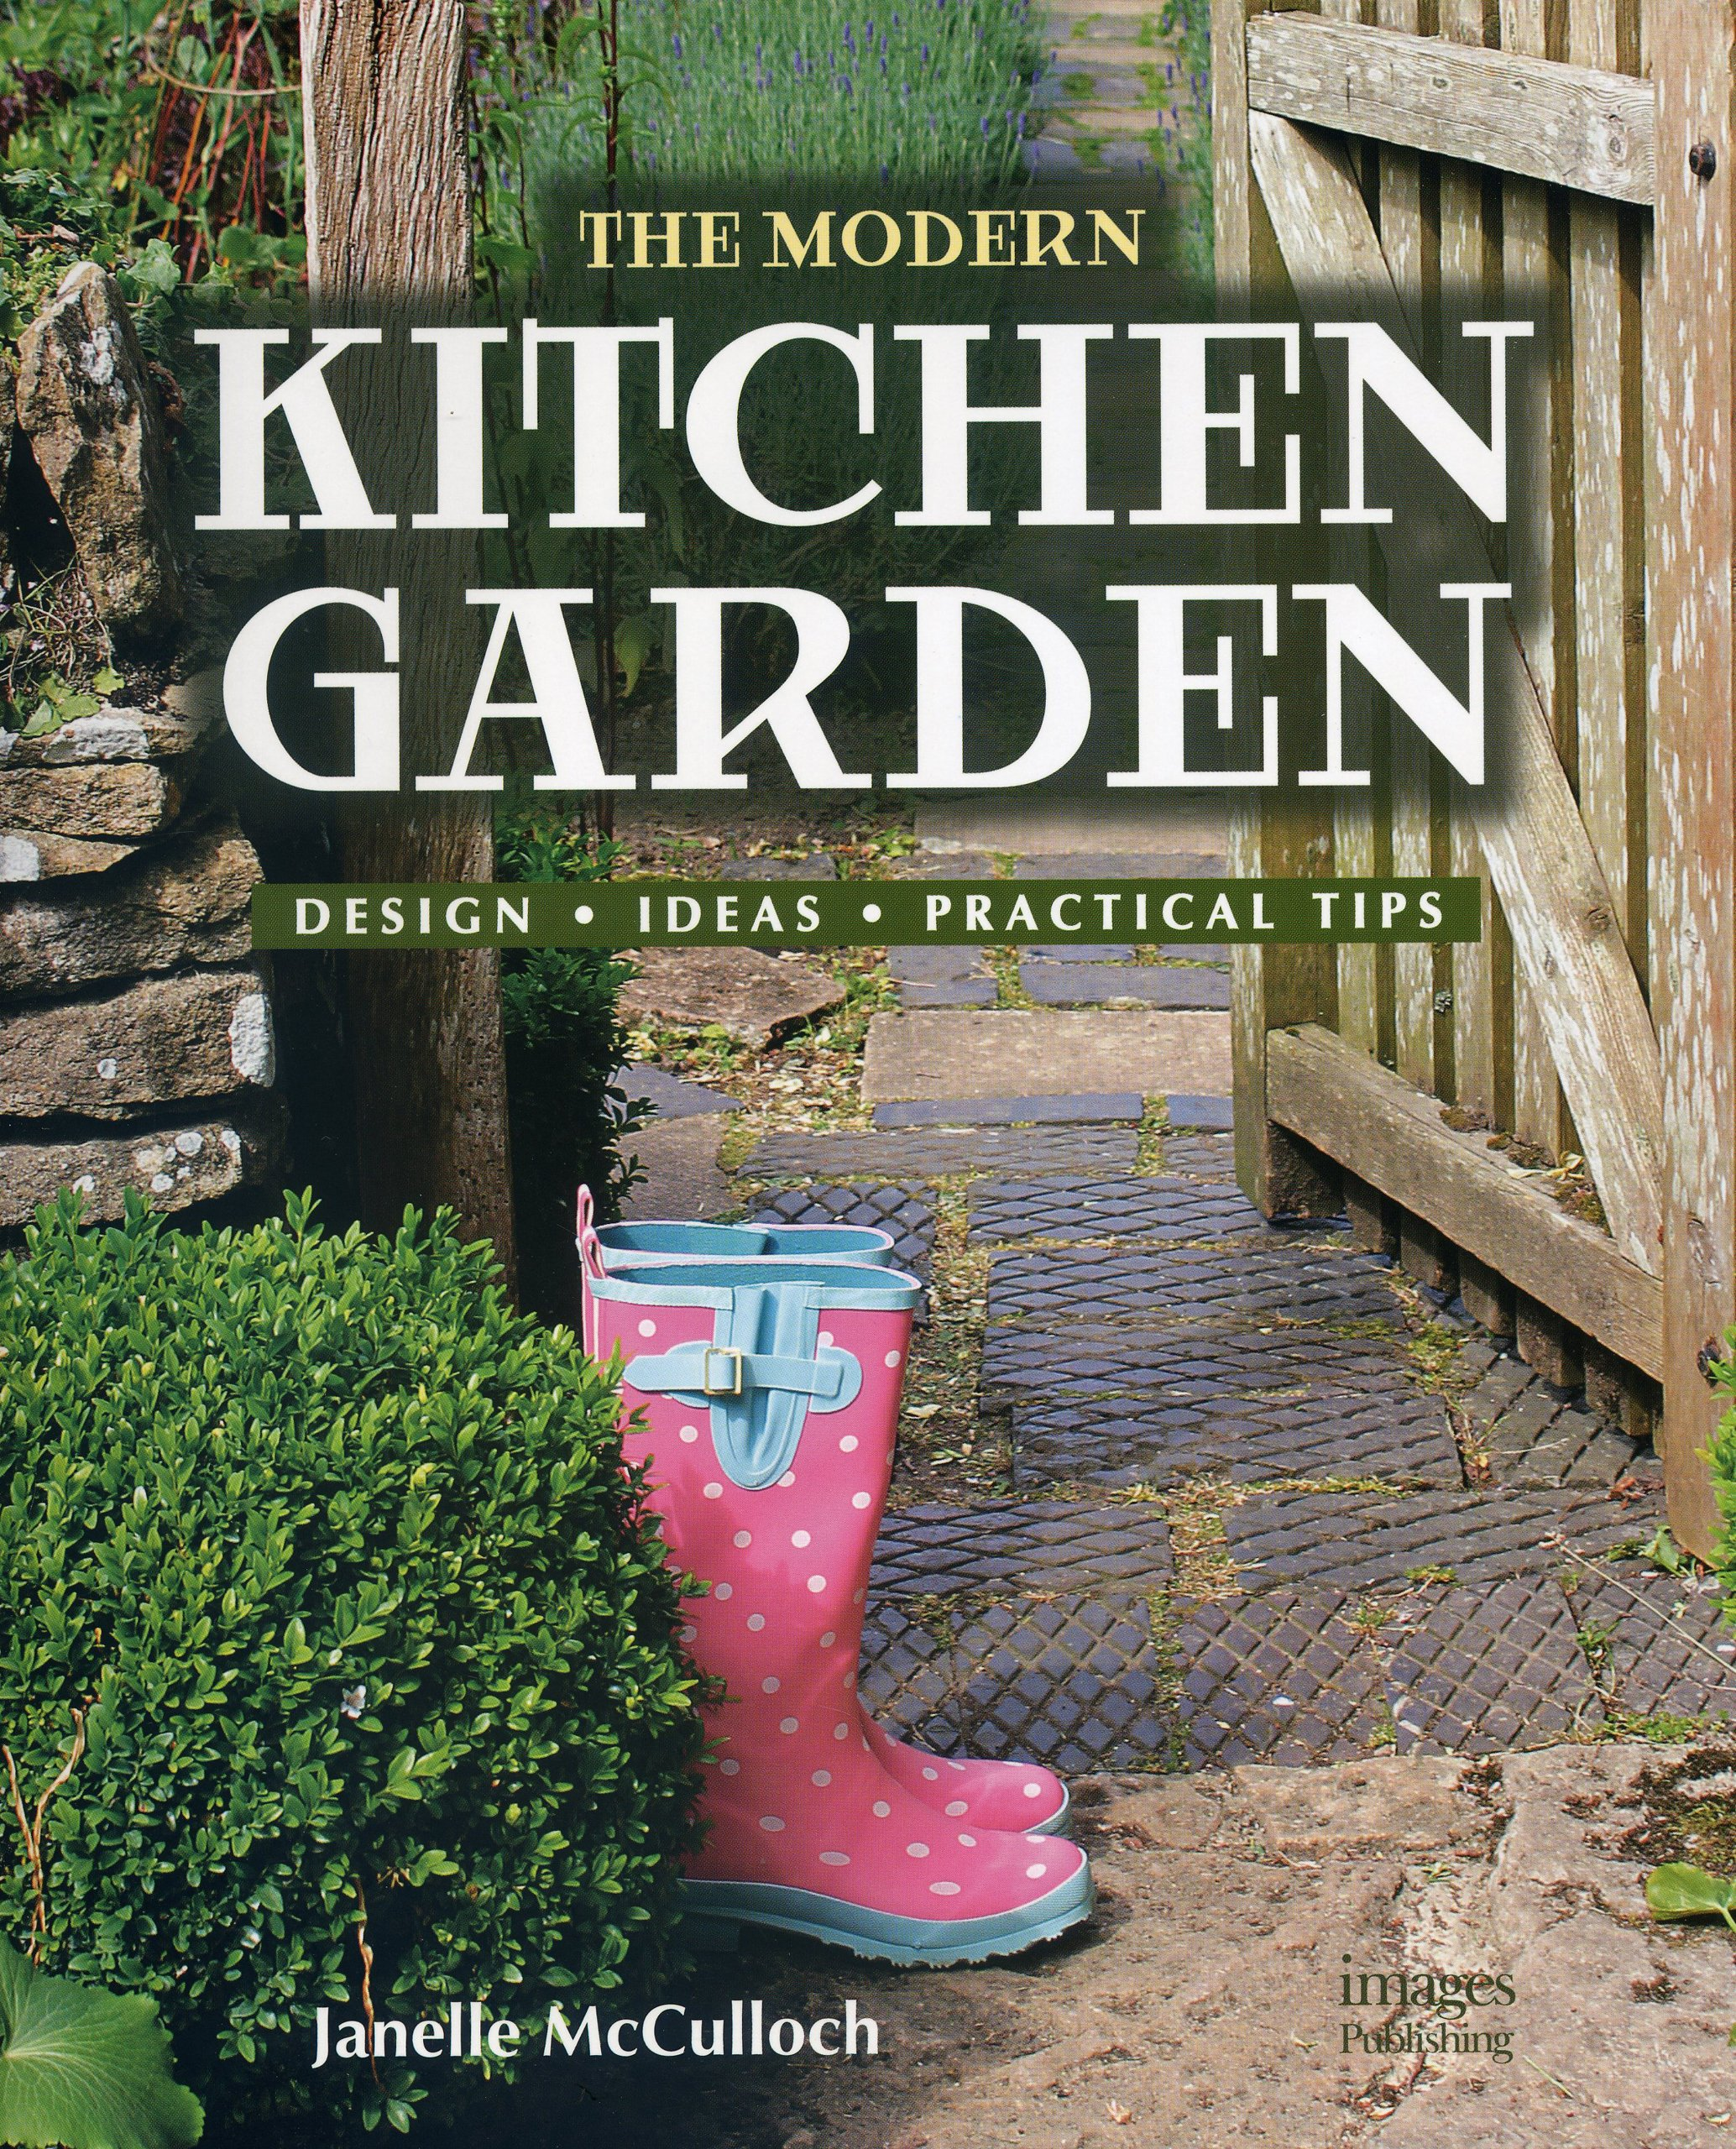 Kitchen garden design ideas - The Modern Kitchen Garden Design Ideas Practical Tips Janelle Mcculloch 9781864704211 Amazon Com Books